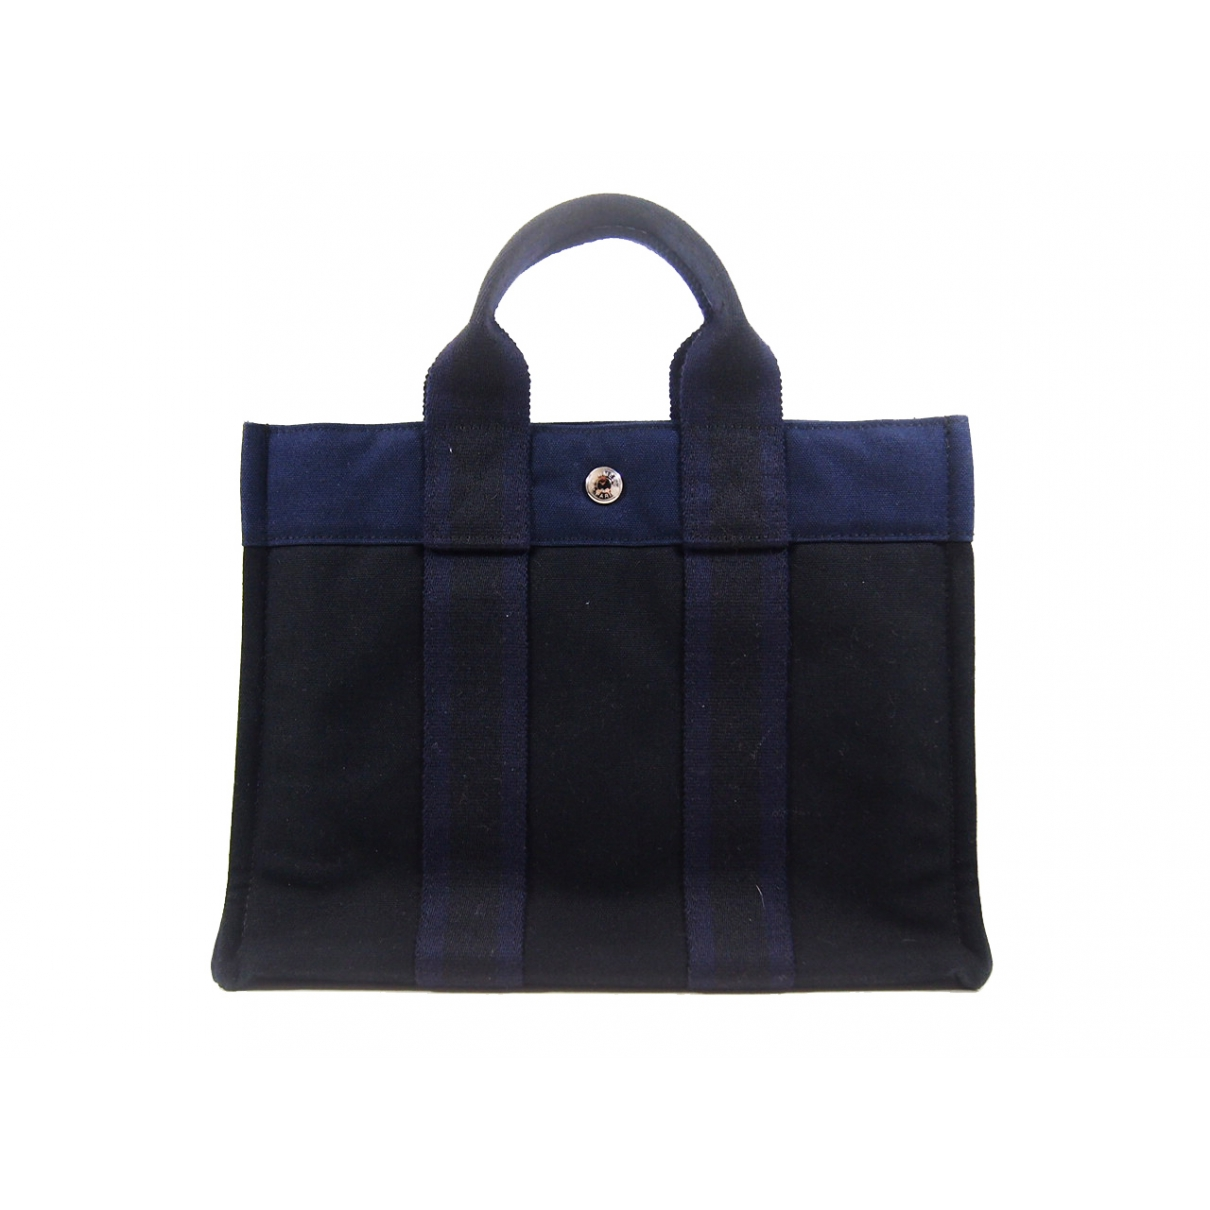 Hermès \N Navy Cloth handbag for Women \N